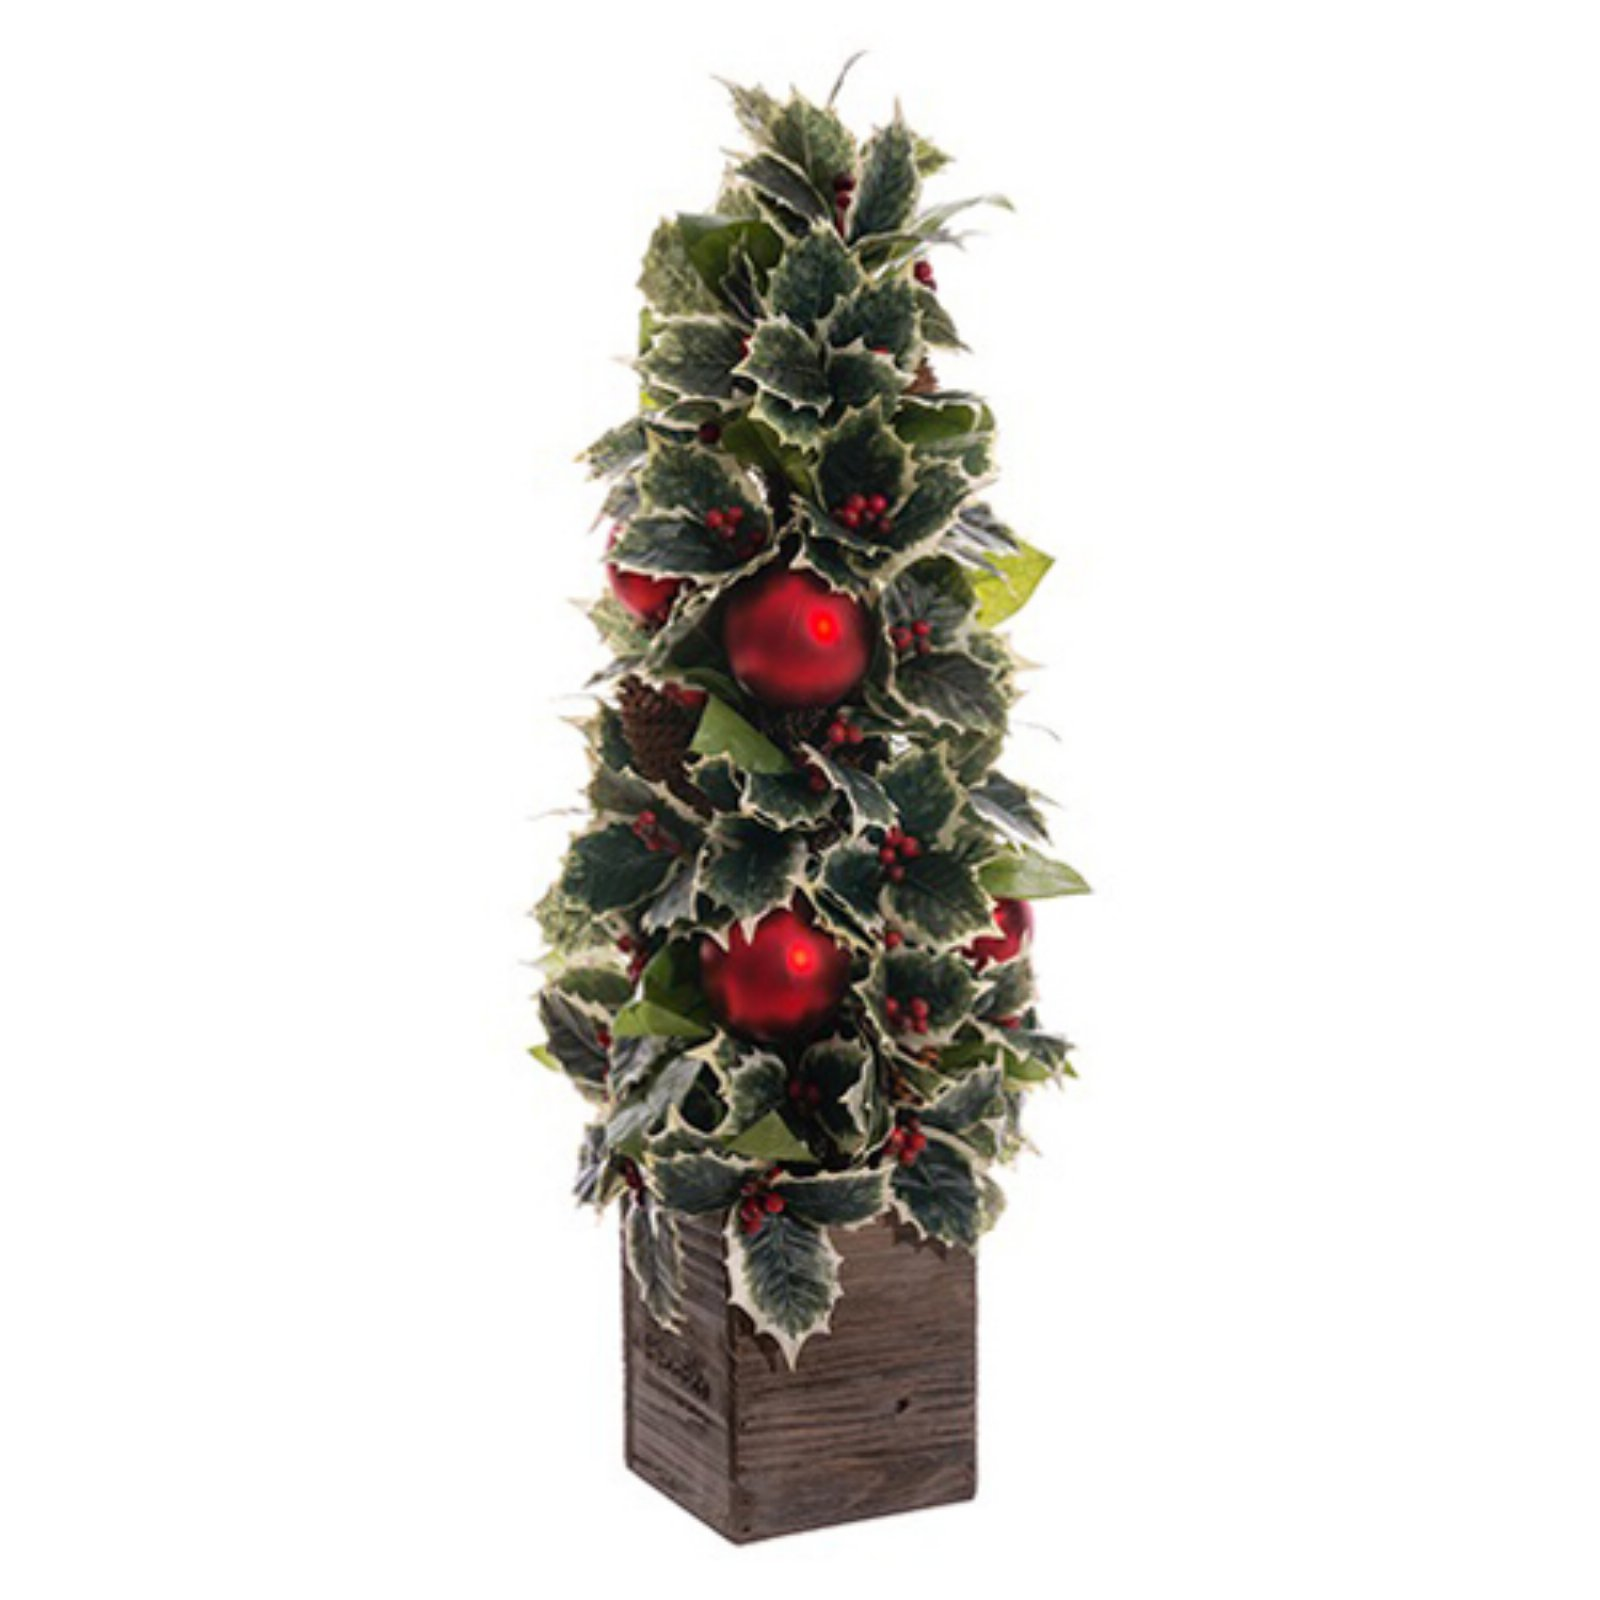 Northlight Artificial Christmas Topiary Plant